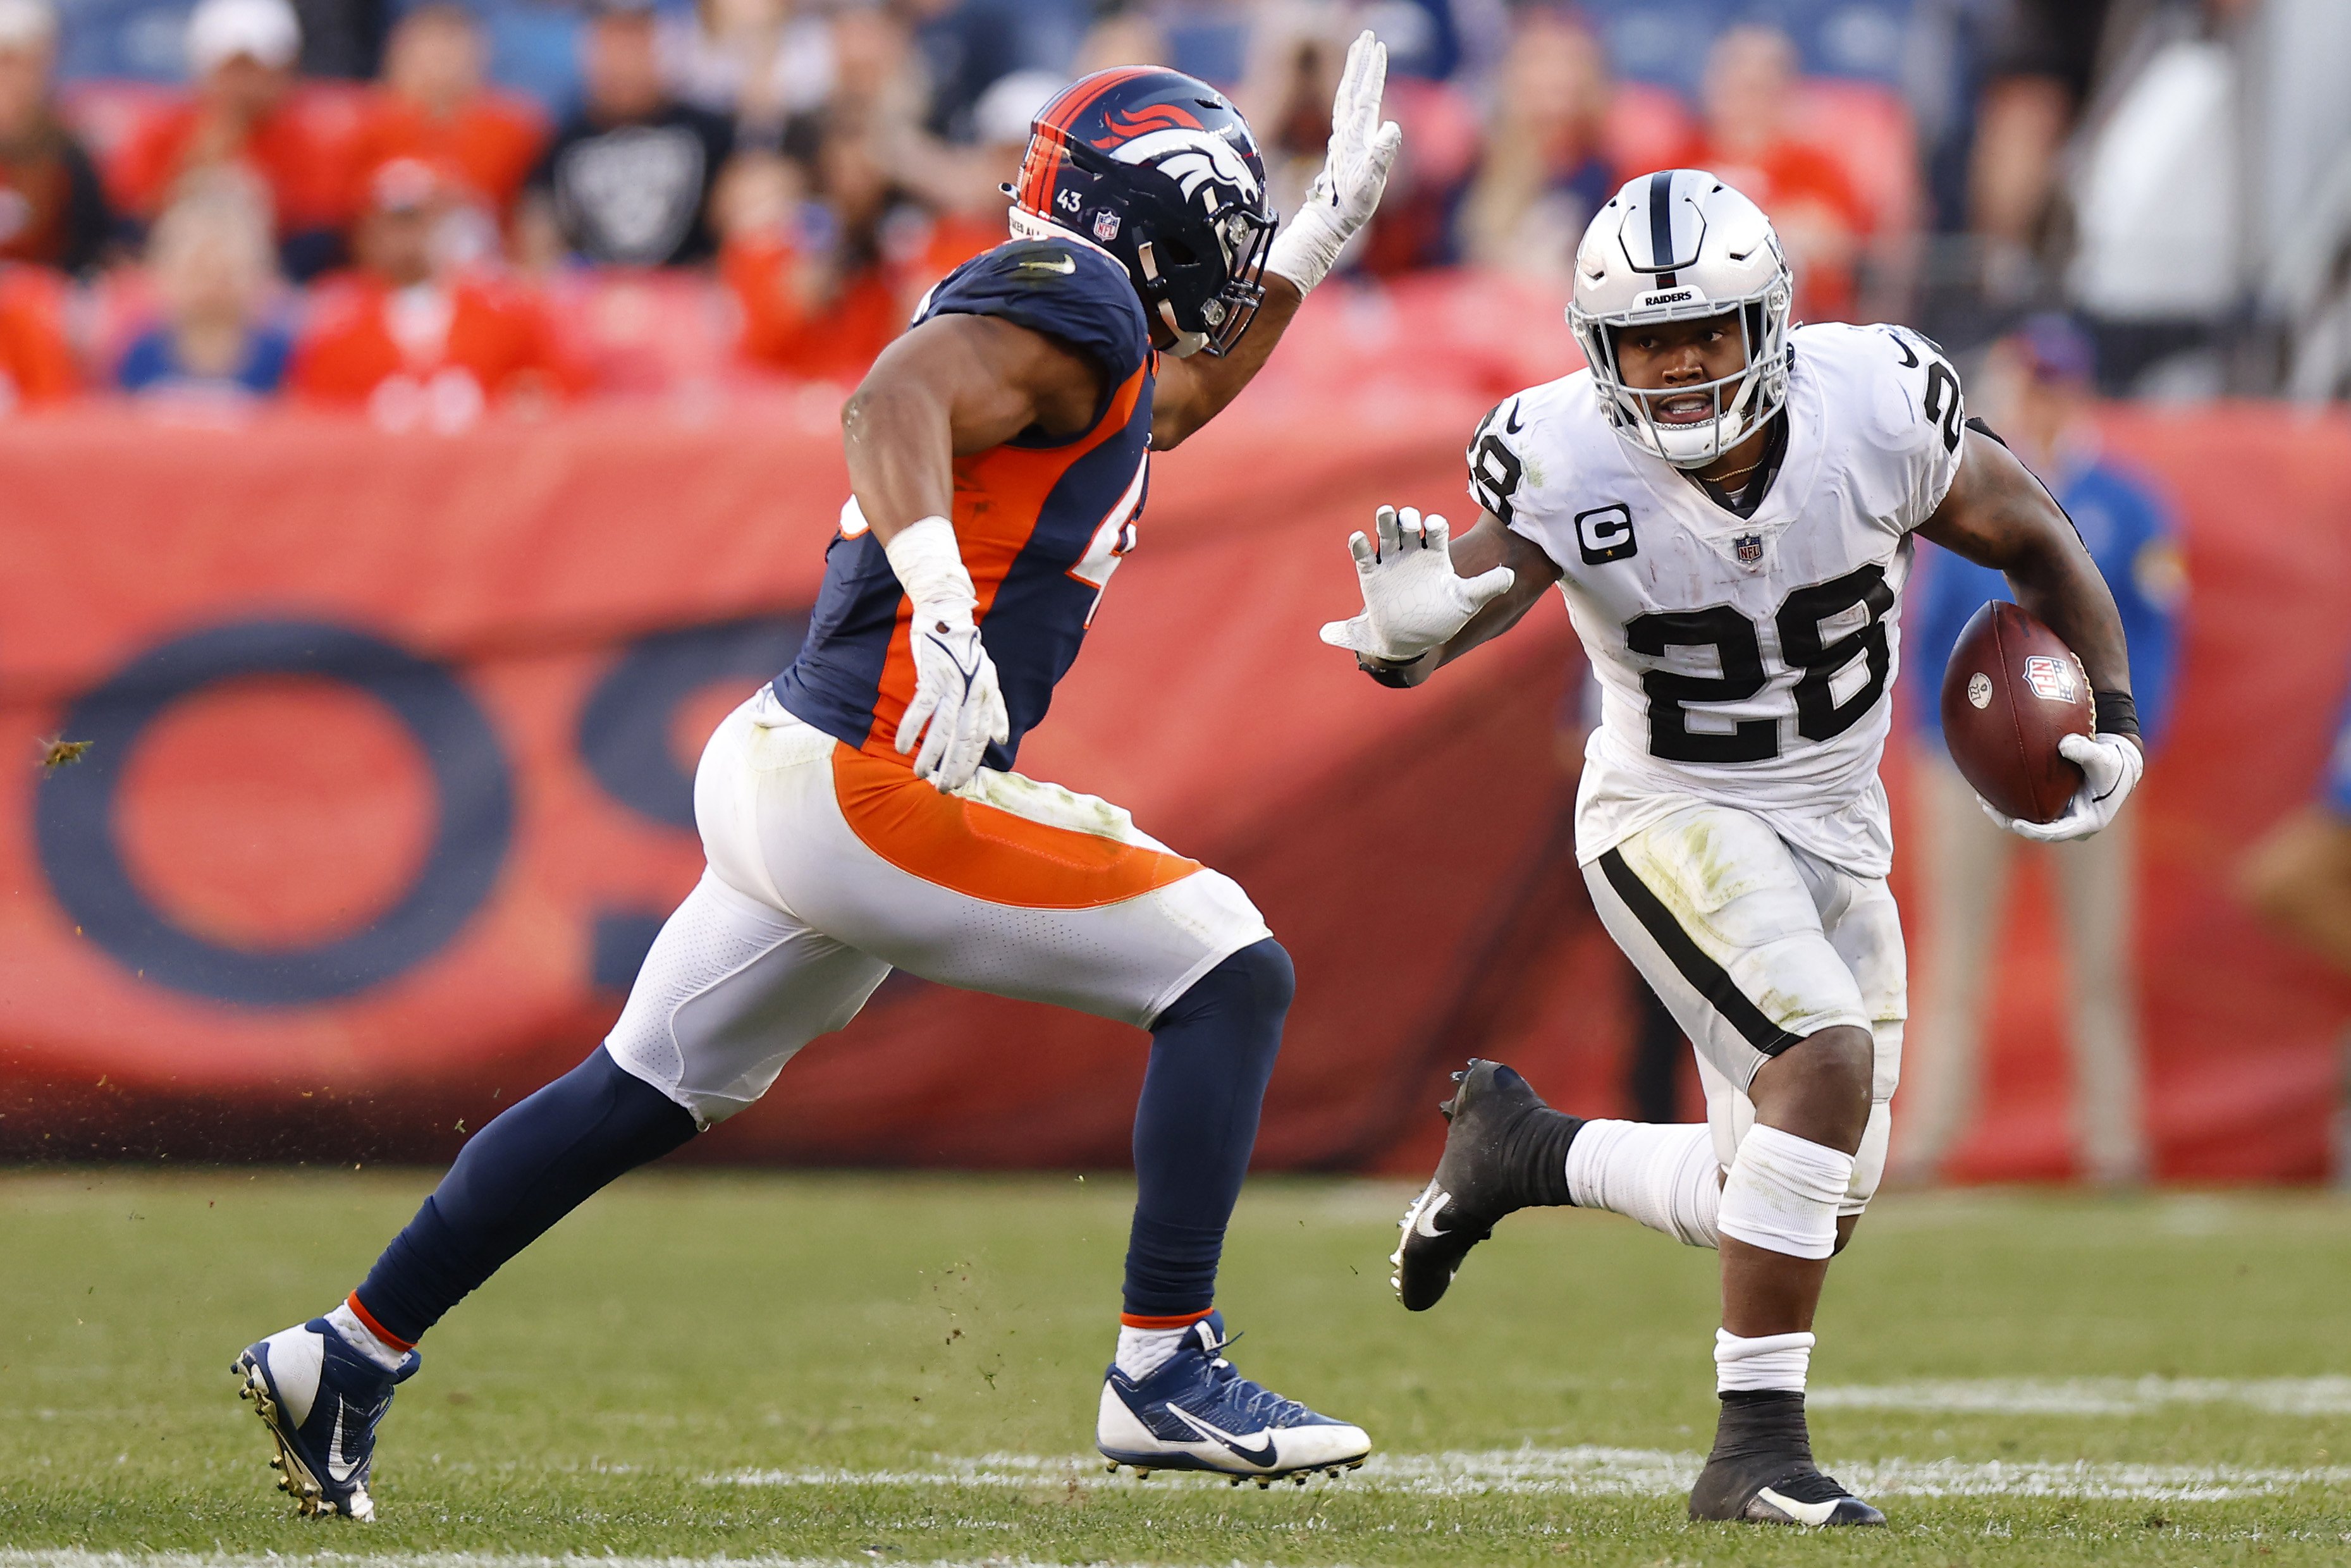 Josh Jacobs #28 of the Las Vegas Raiders runs with the ball against Micah Kiser #43 of the Denver Broncos during the fourth quarter at Empower Field At Mile High on October 17, 2021 in Denver, Colorado.